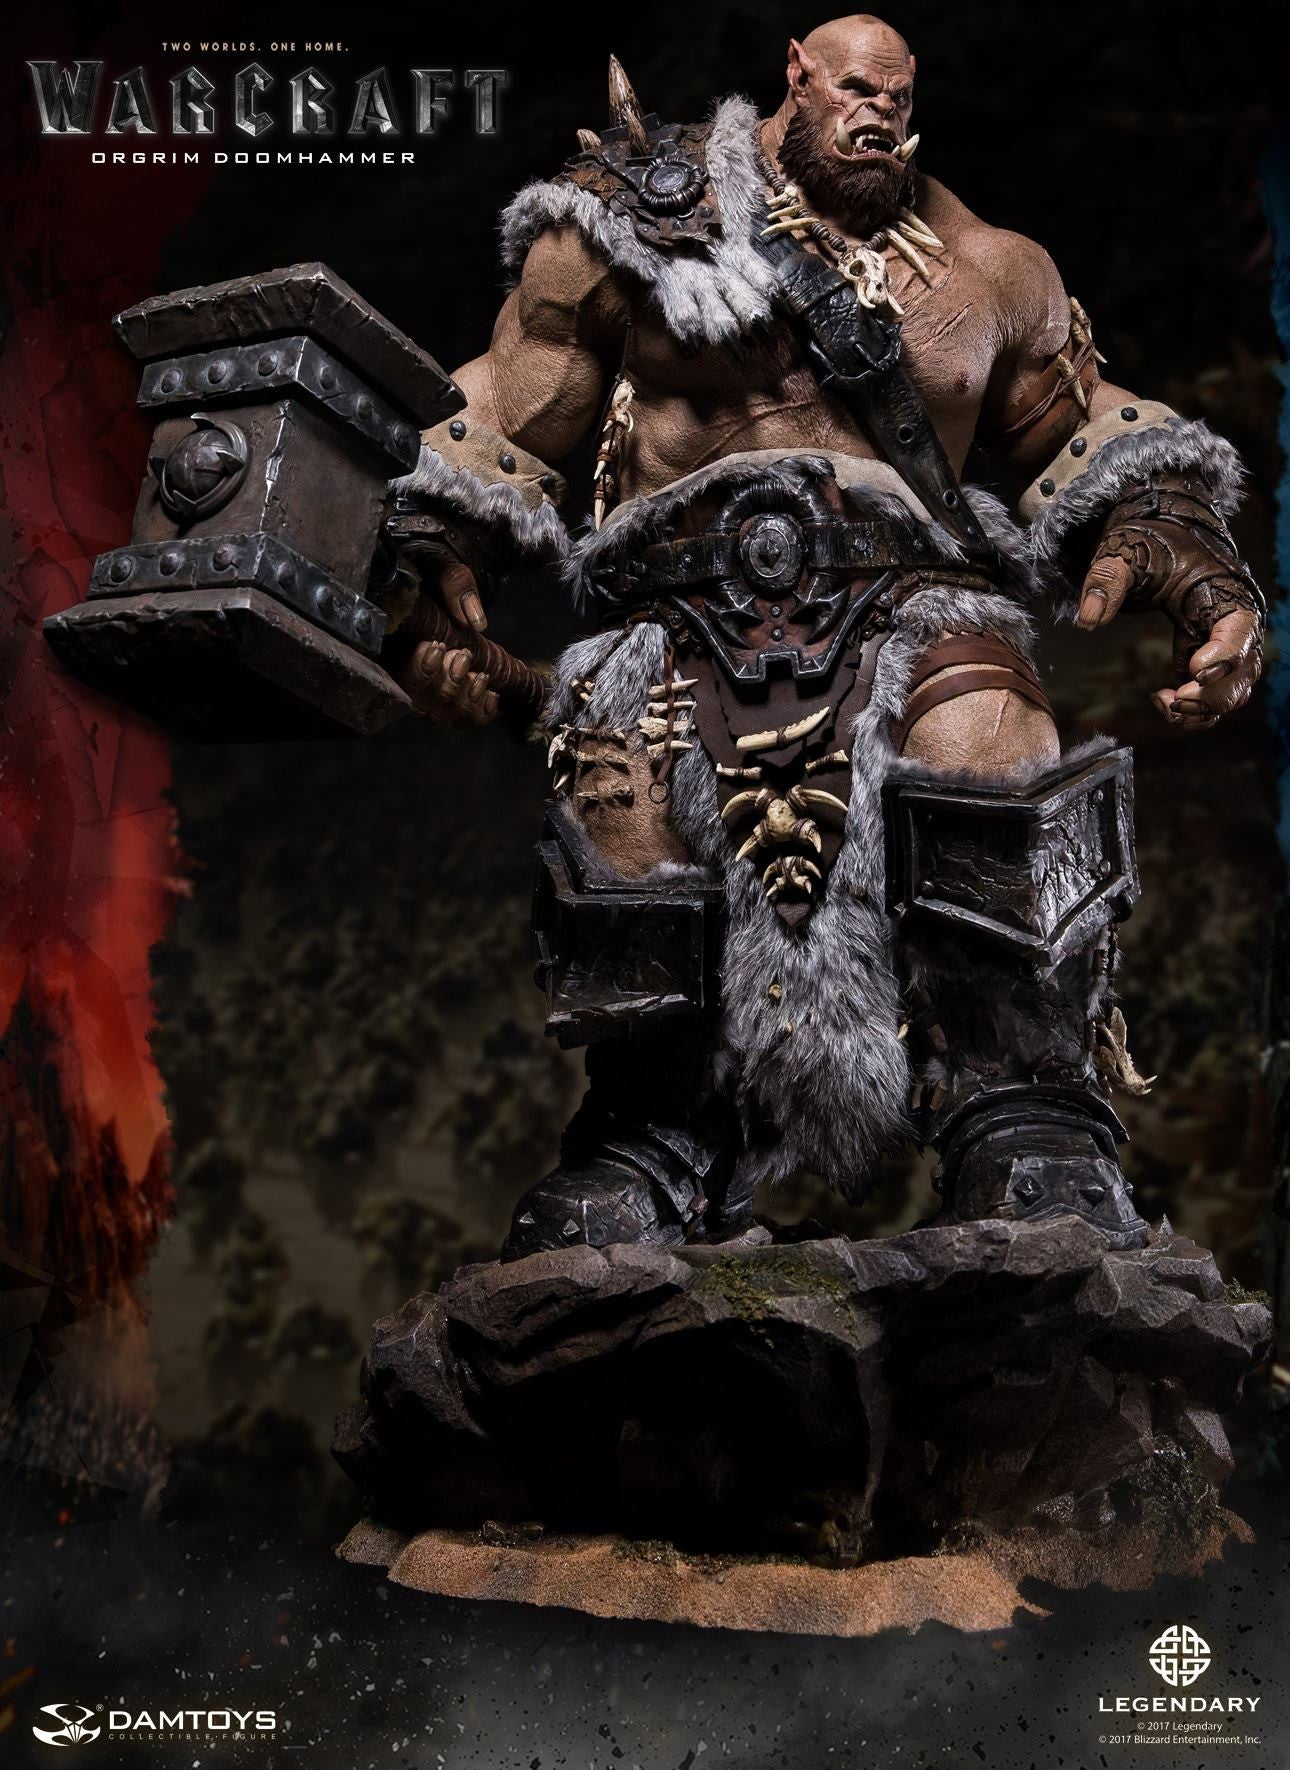 Dam Toys - DMLW02 - Epic Series - Warcraft - Orgrim Doomhammer Premium Statue - Marvelous Toys - 12